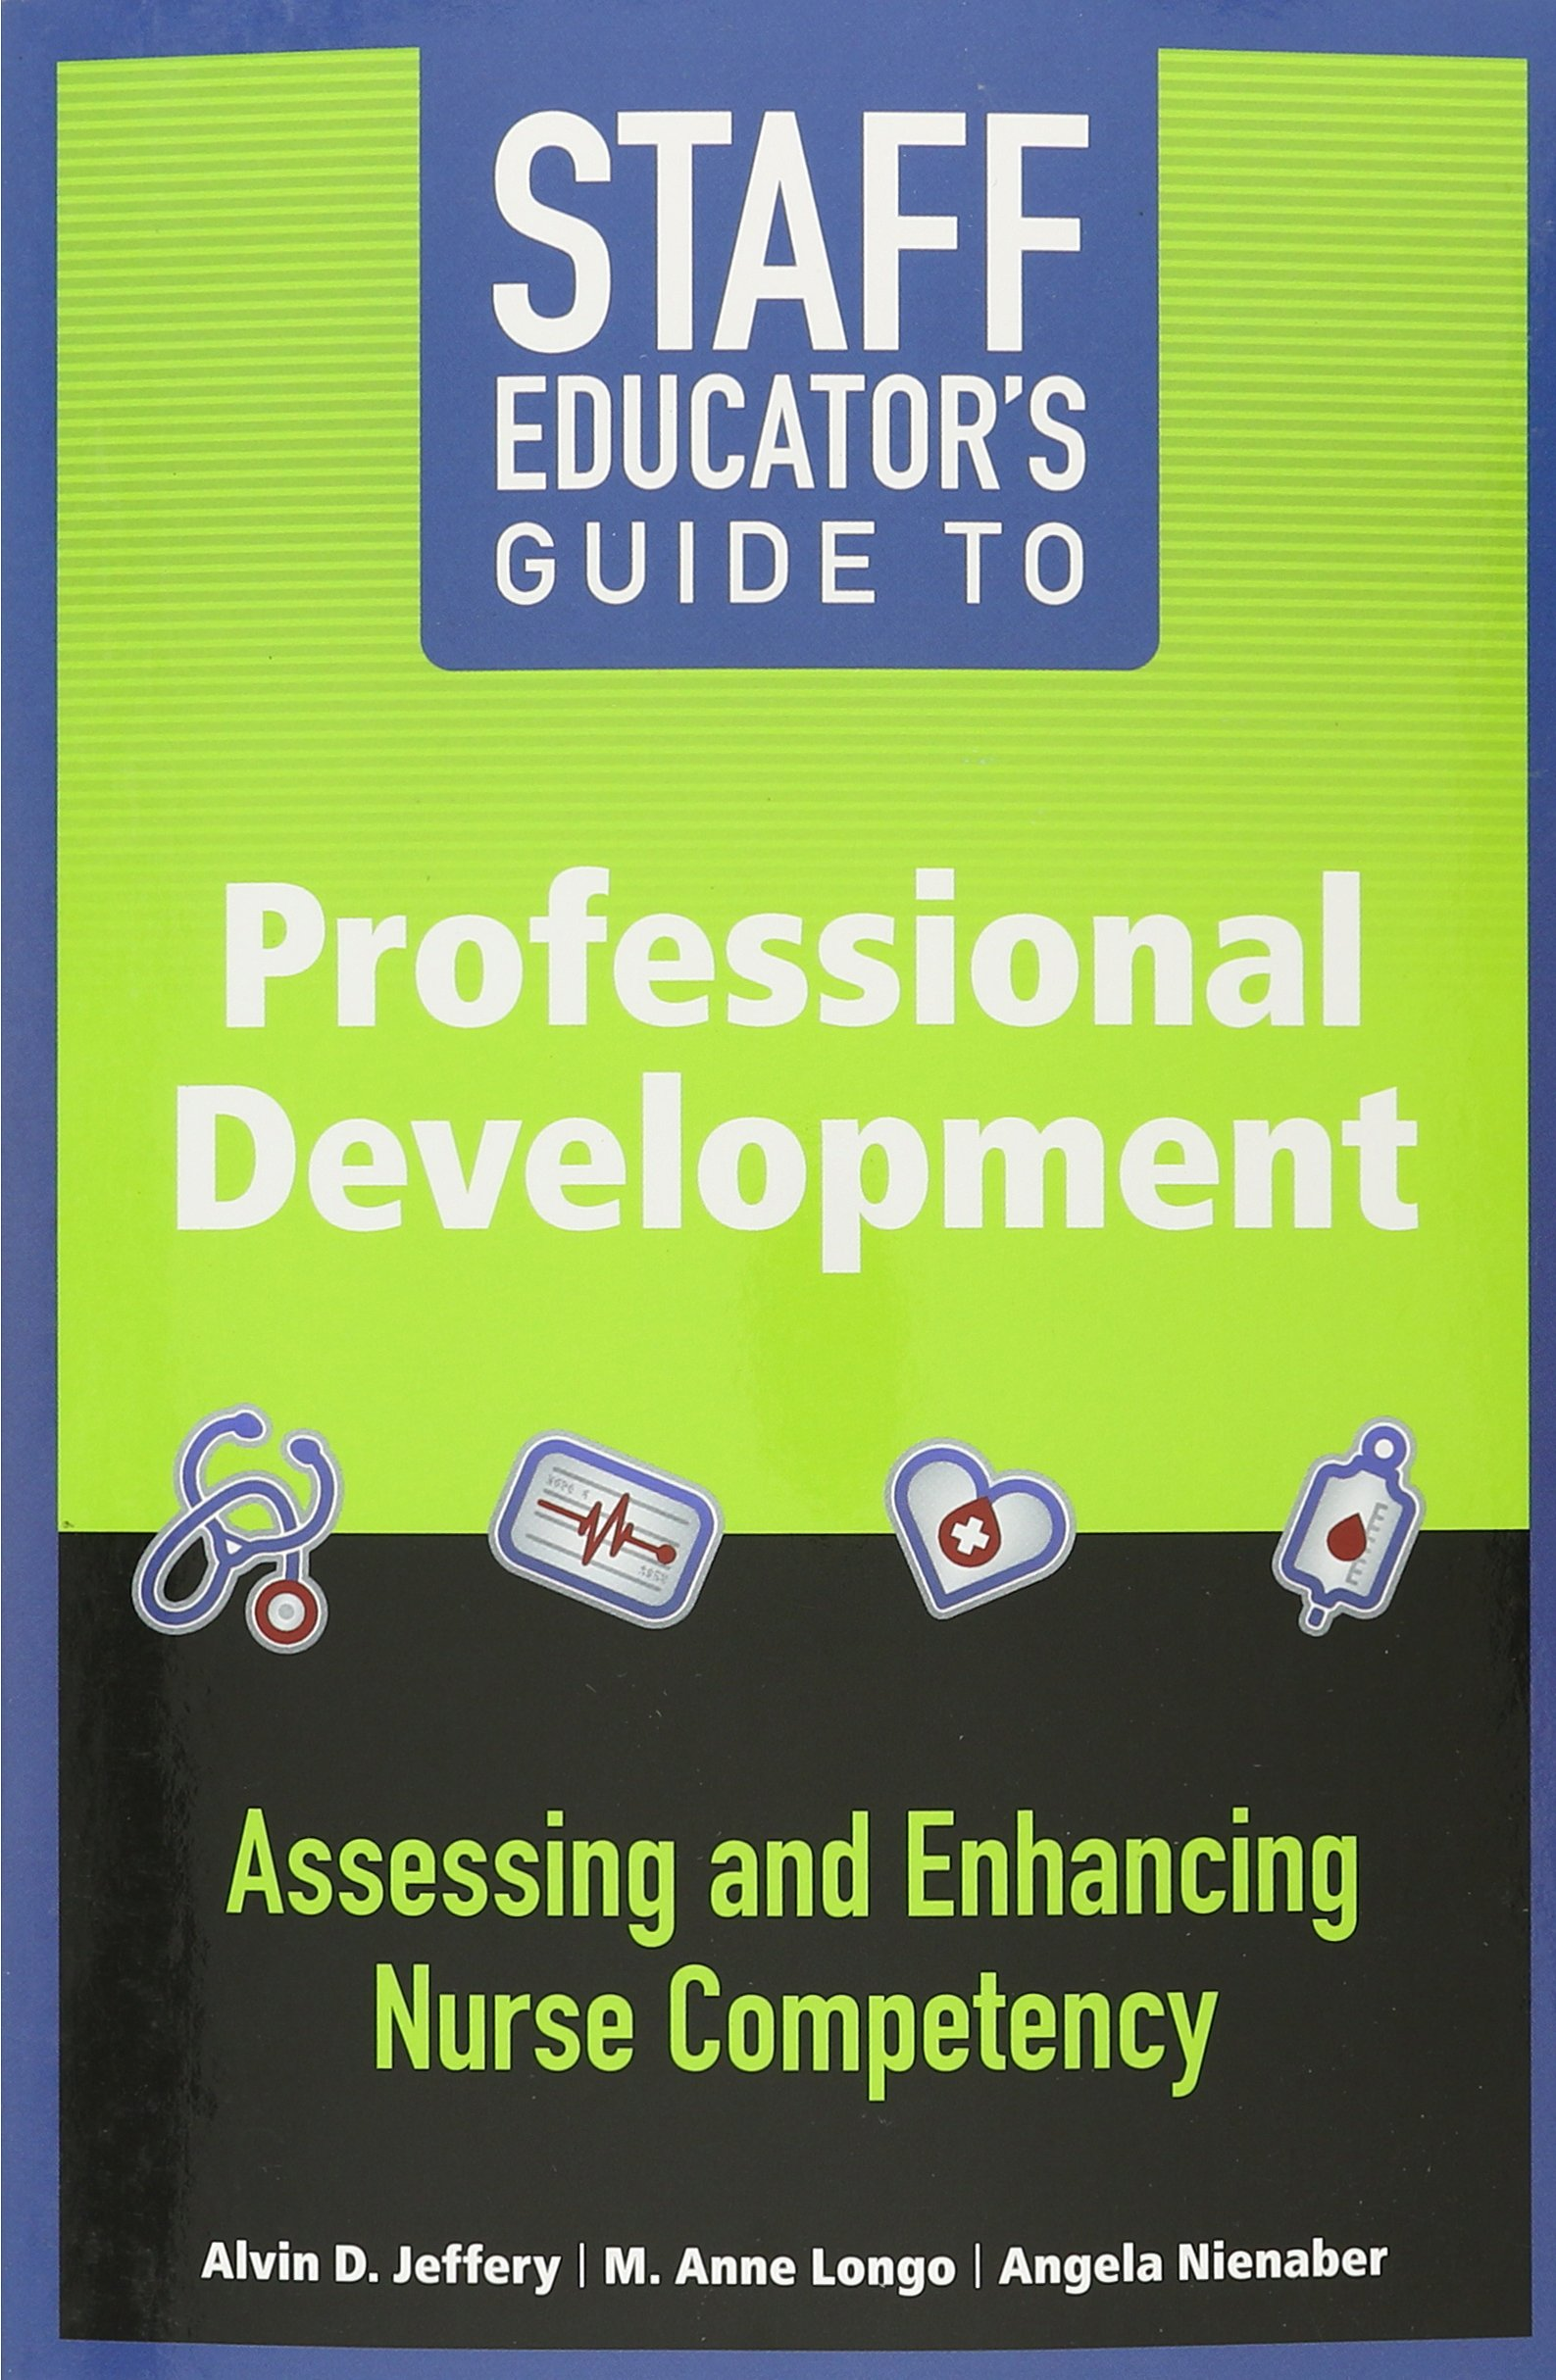 Staff Educator's Guide To Professional Development  Assessing And Enhancing Nurse Competency